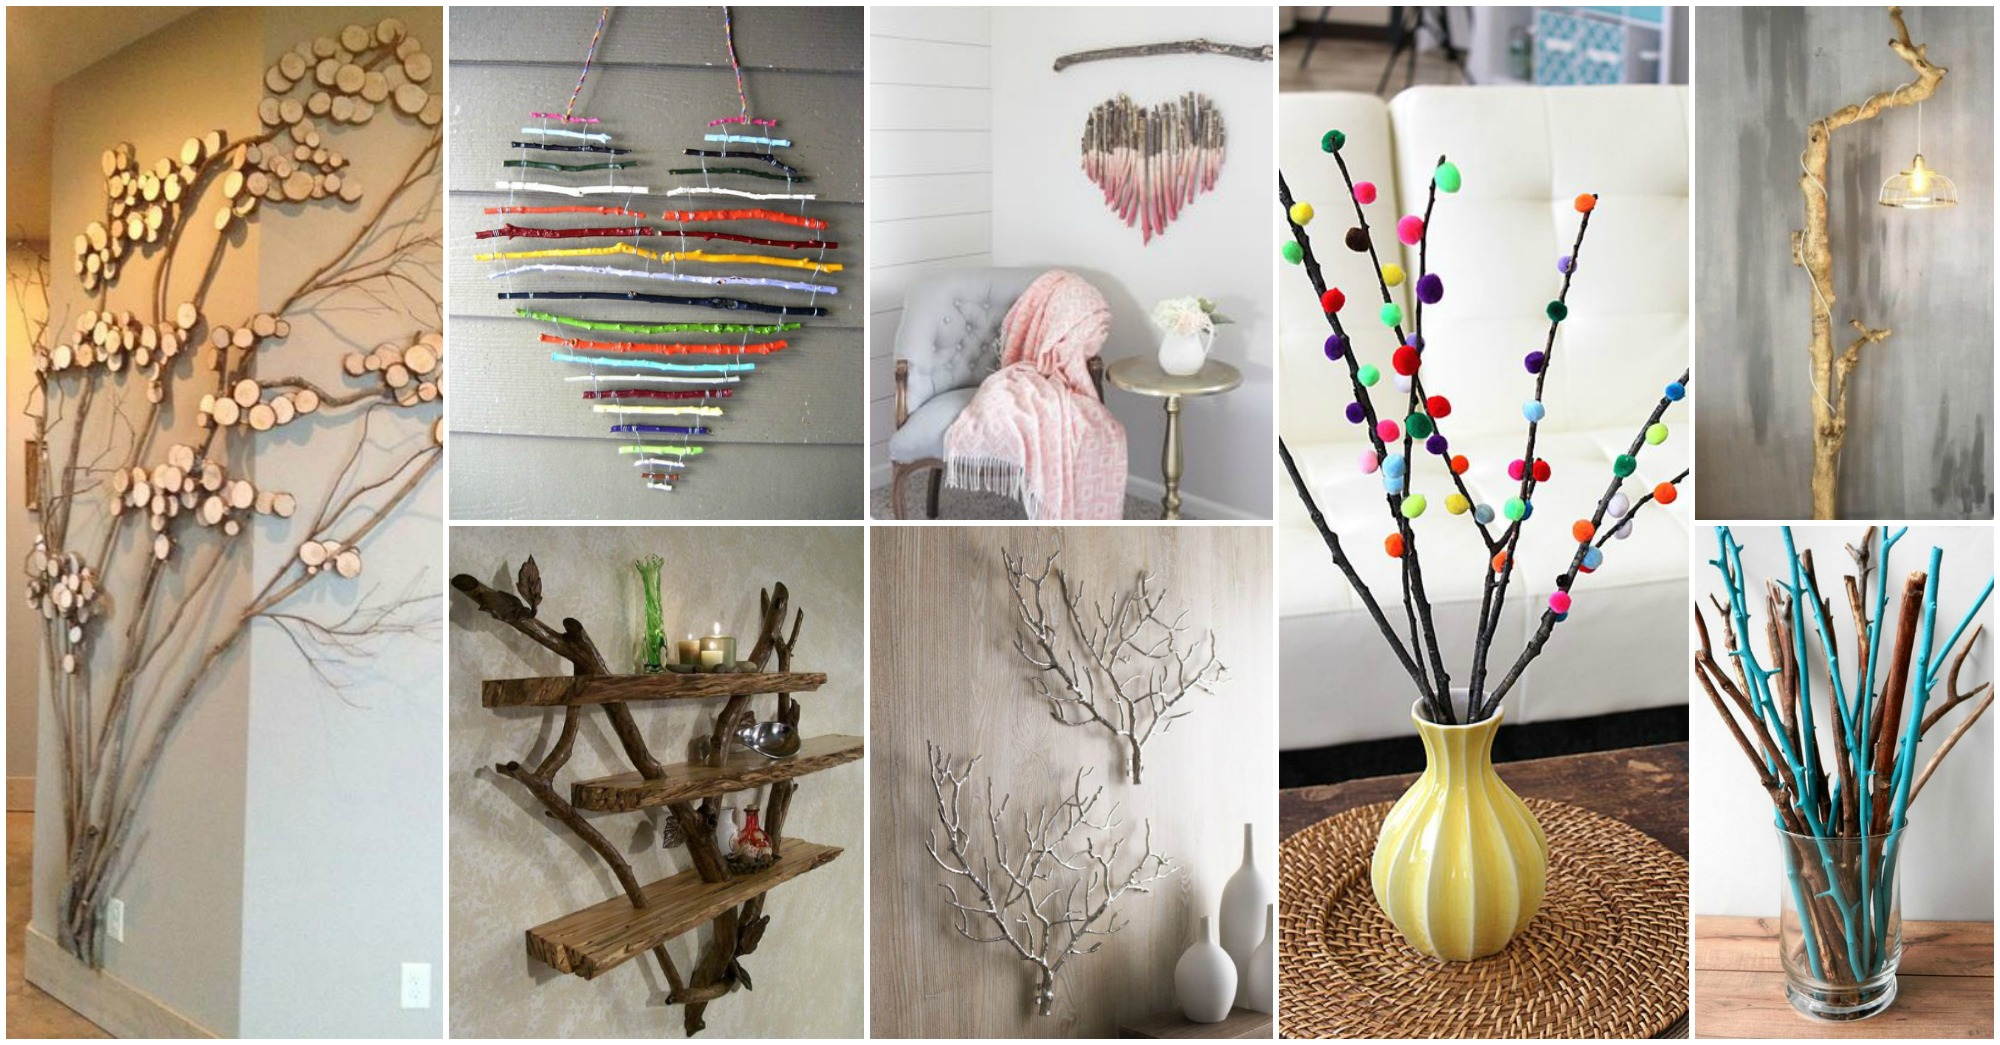 Diy tree branches home decor ideas for Unusual home decor ideas